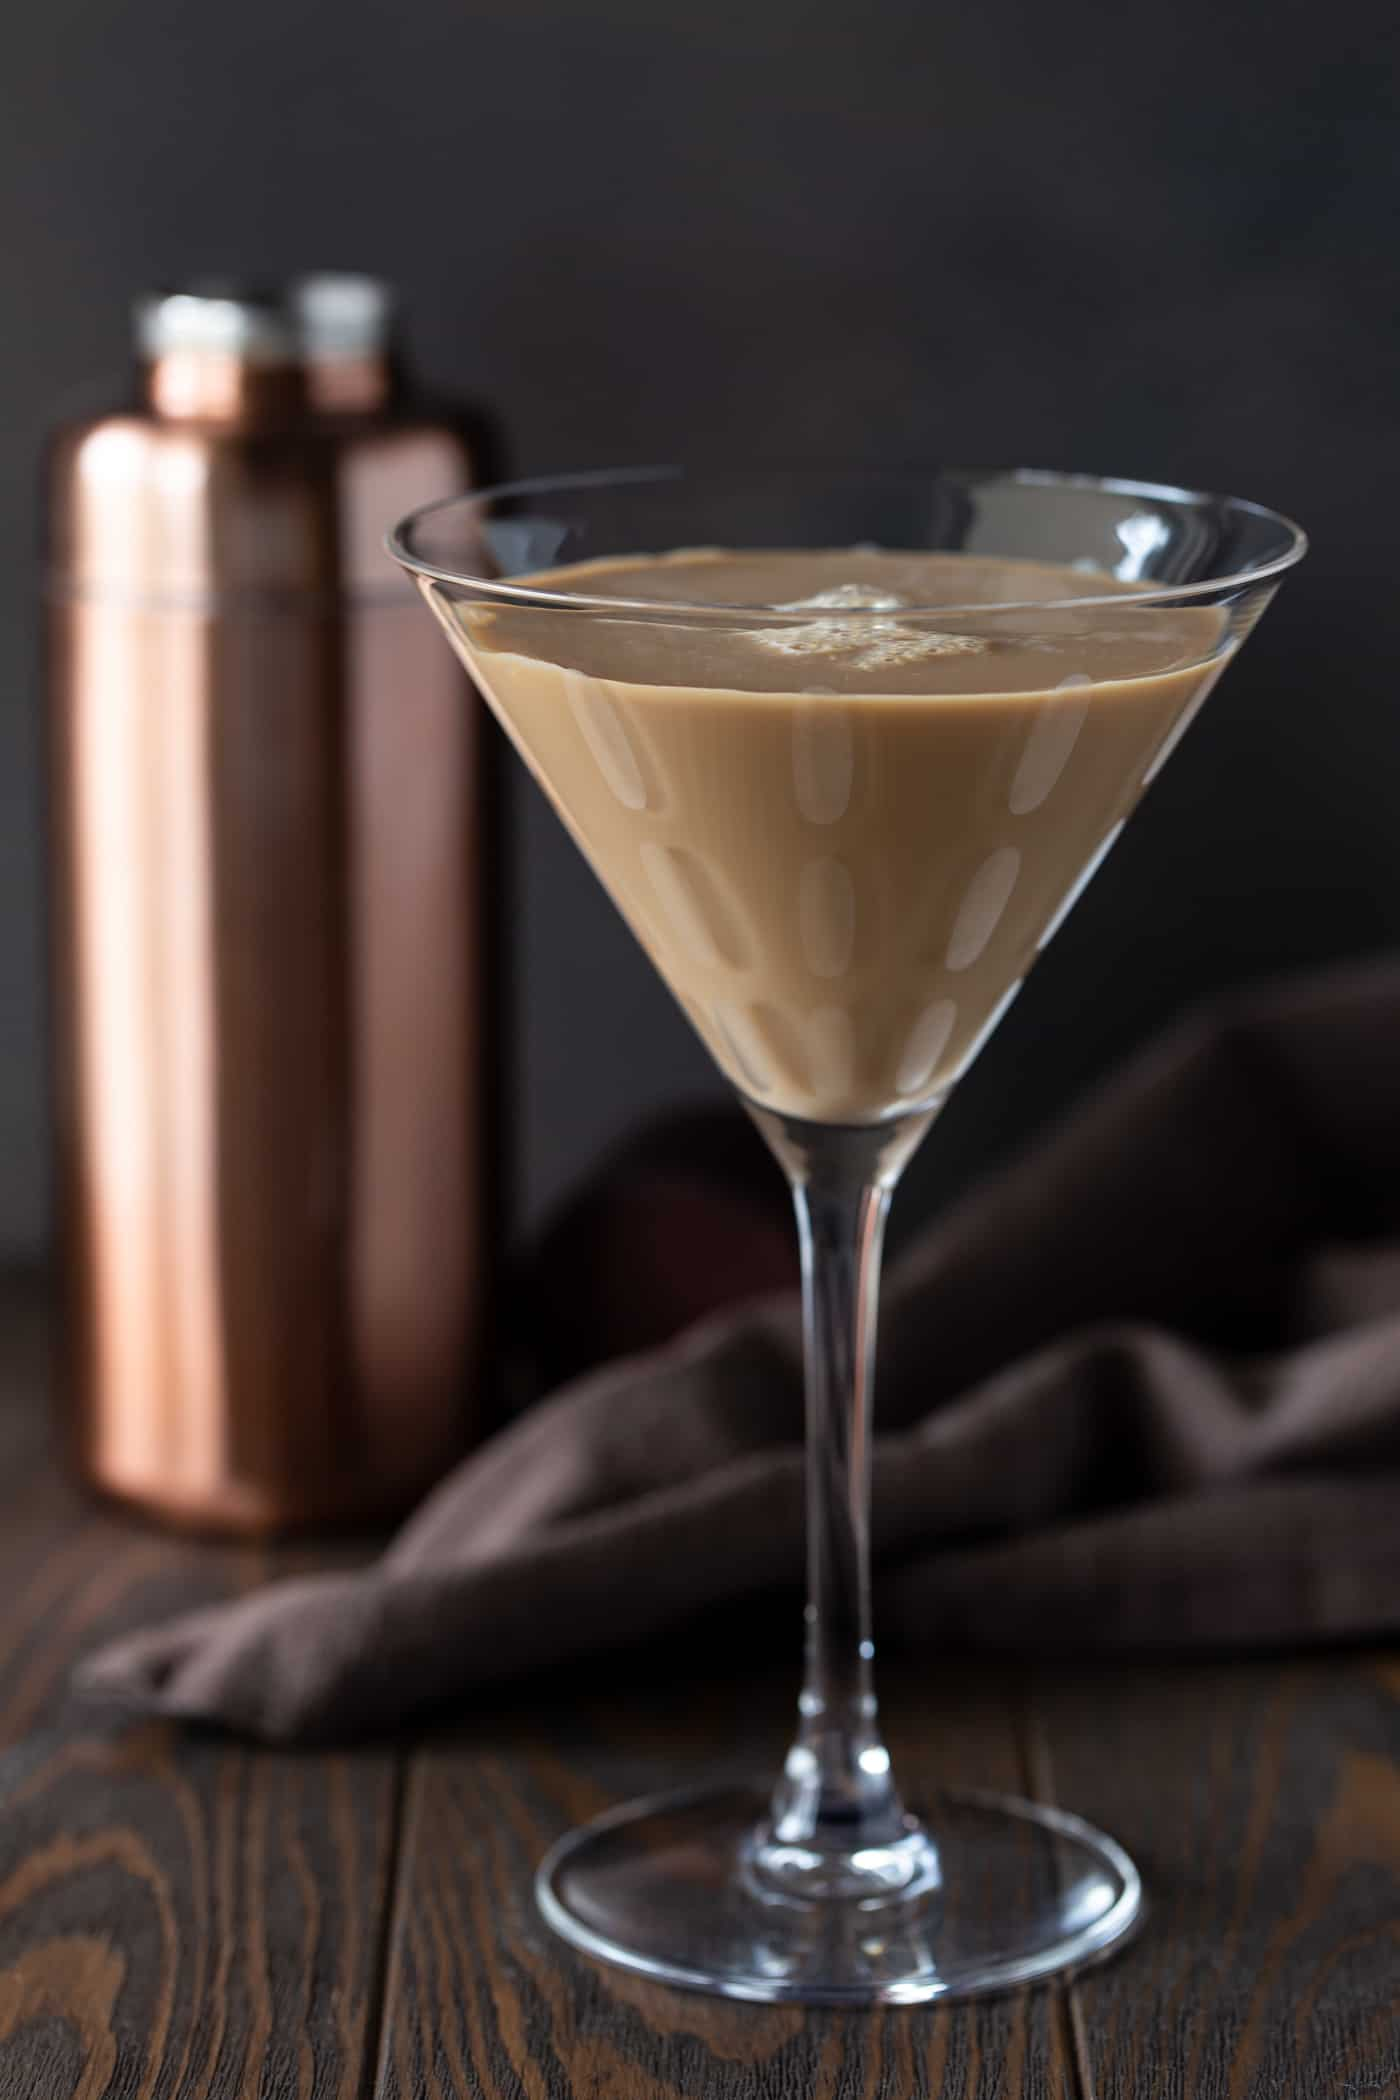 Kahlua Chocolate Martini is a tall martini glass with a rose gold shaker in the background.